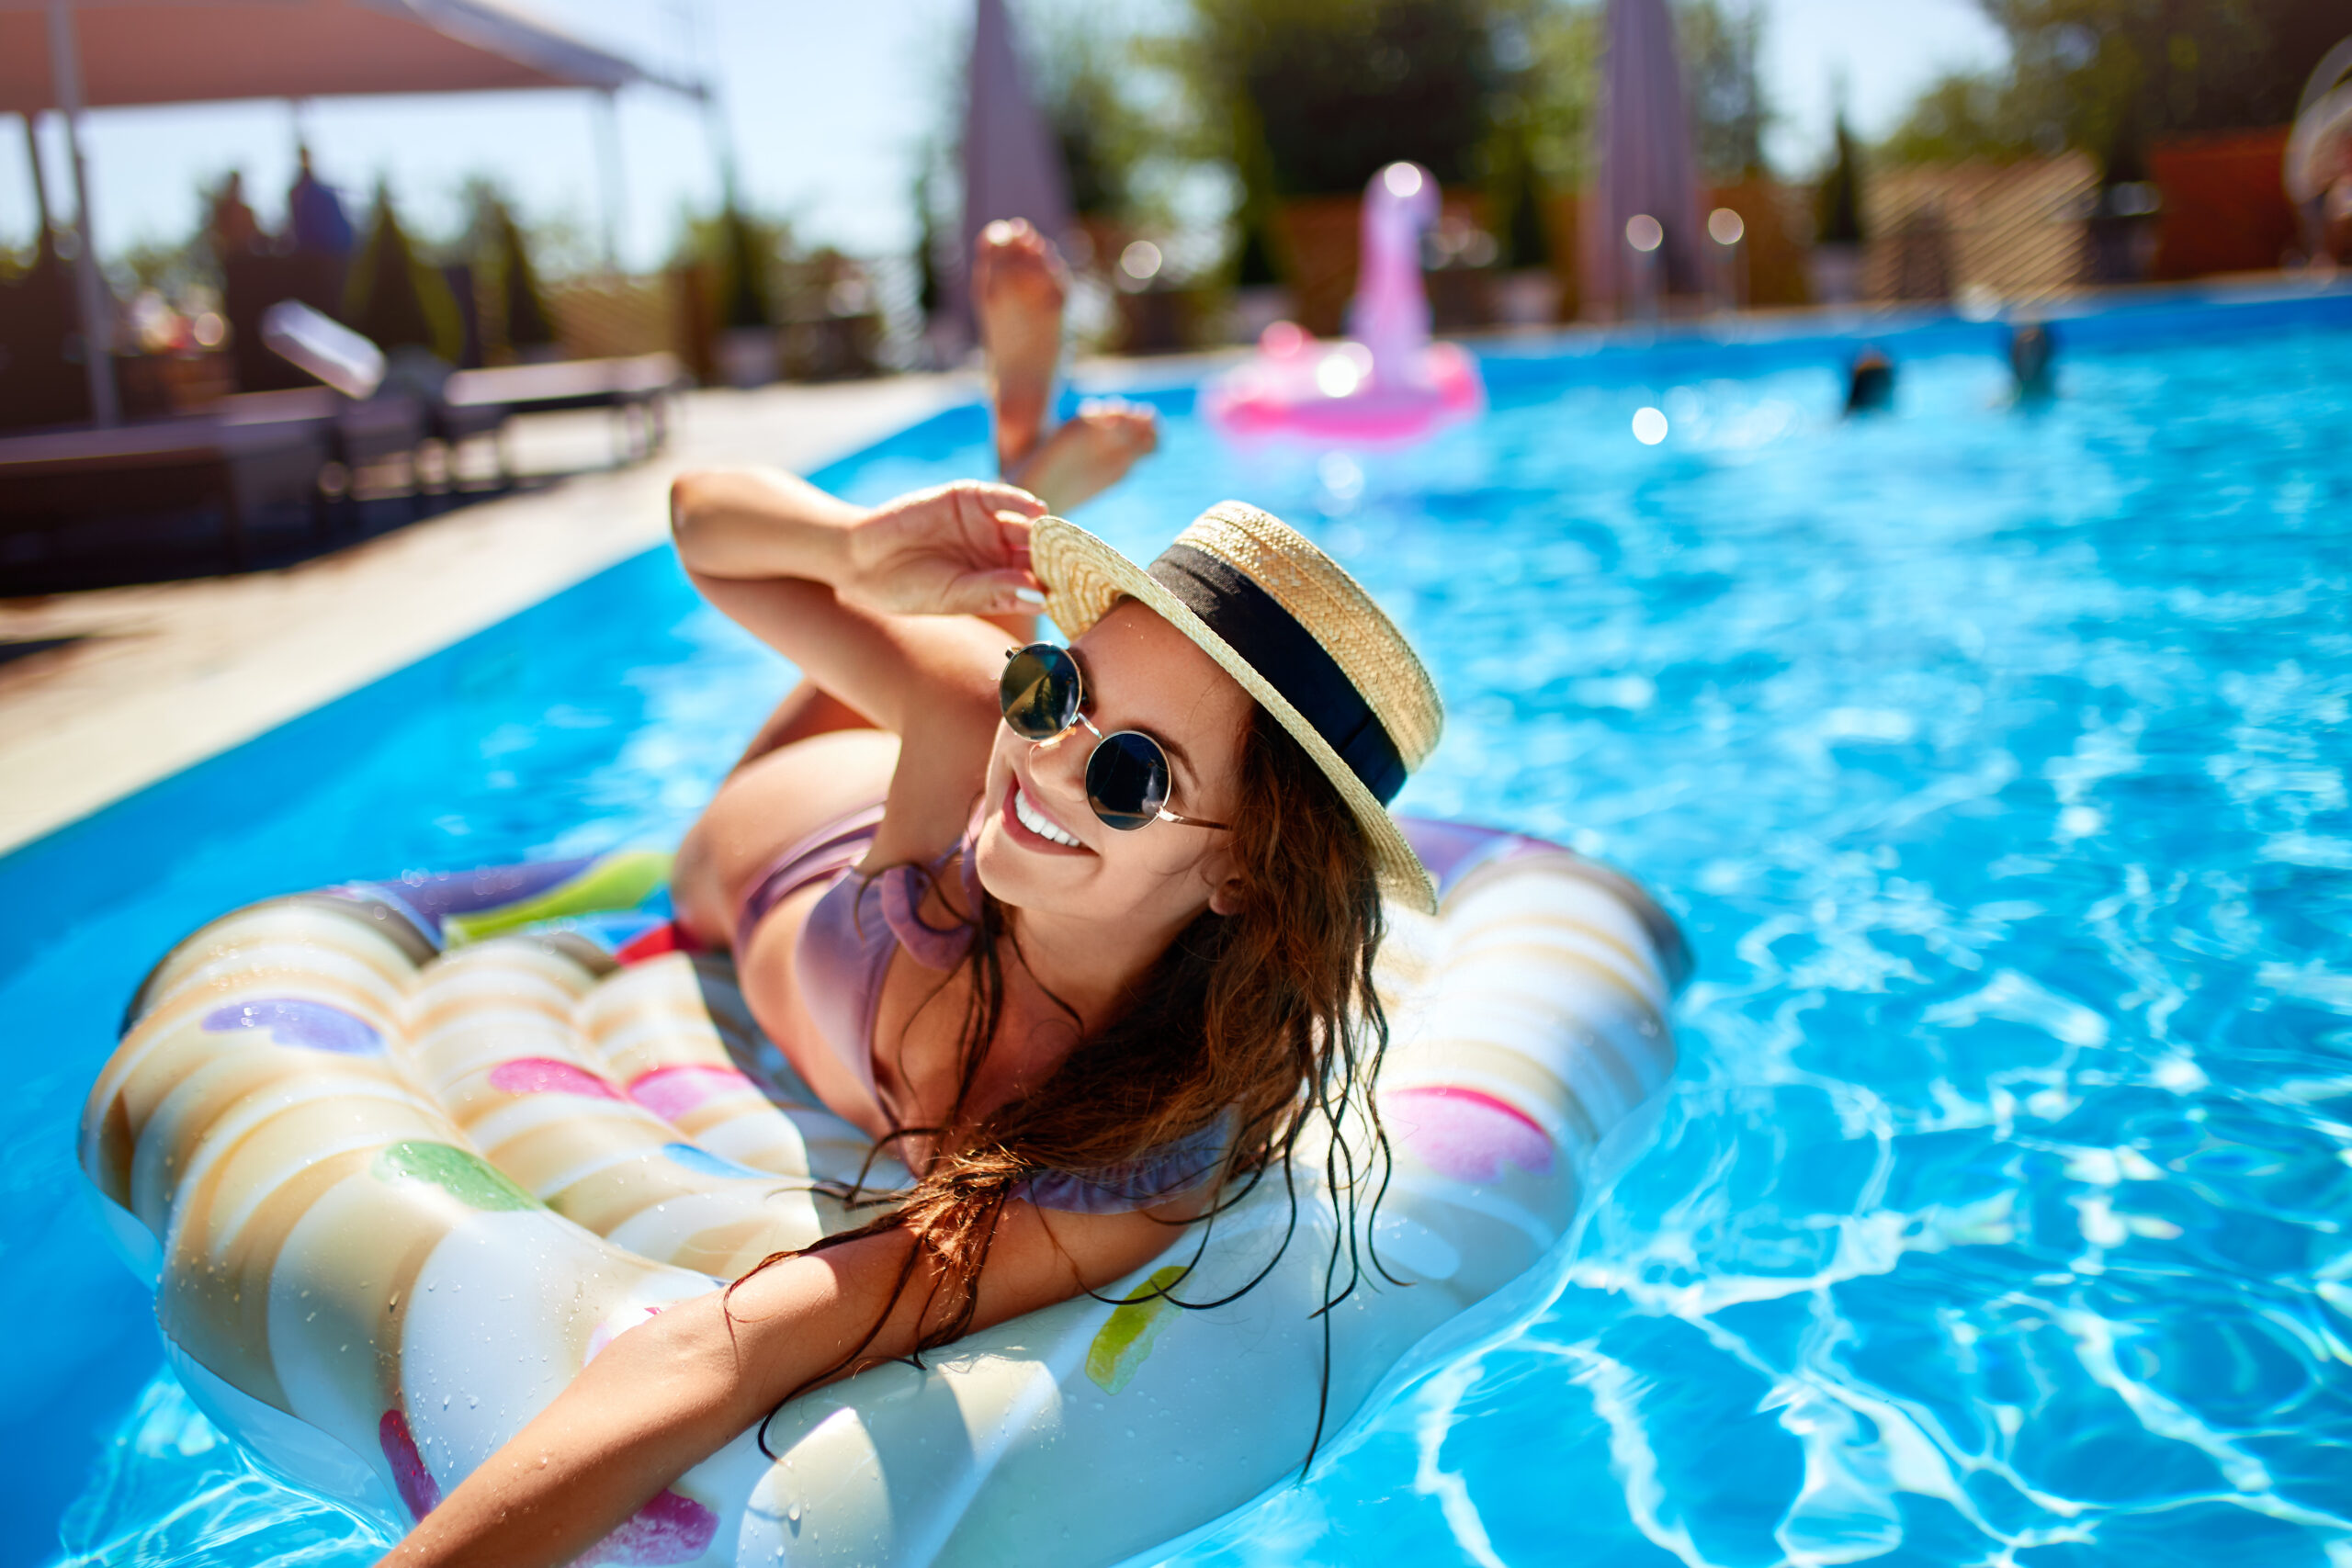 HOTEL POOL DAY PASSES IN SCOTTSDALE